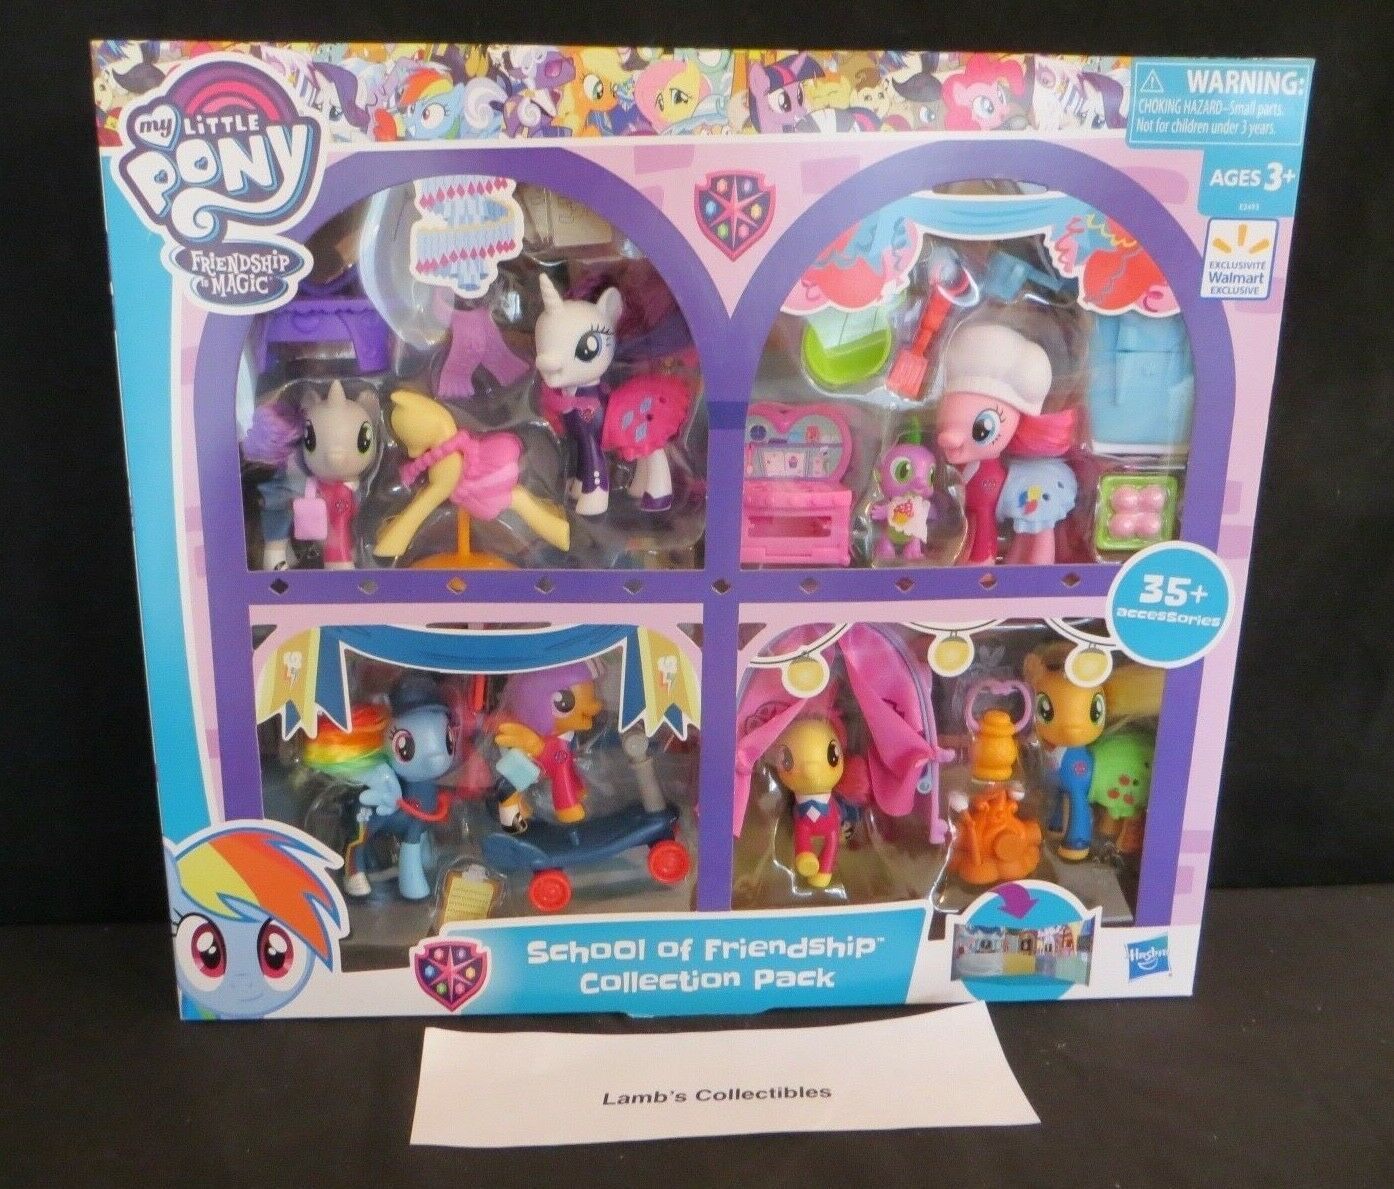 Primary image for My Little Pony Friendship is Magic School of Friendship collection pack excl